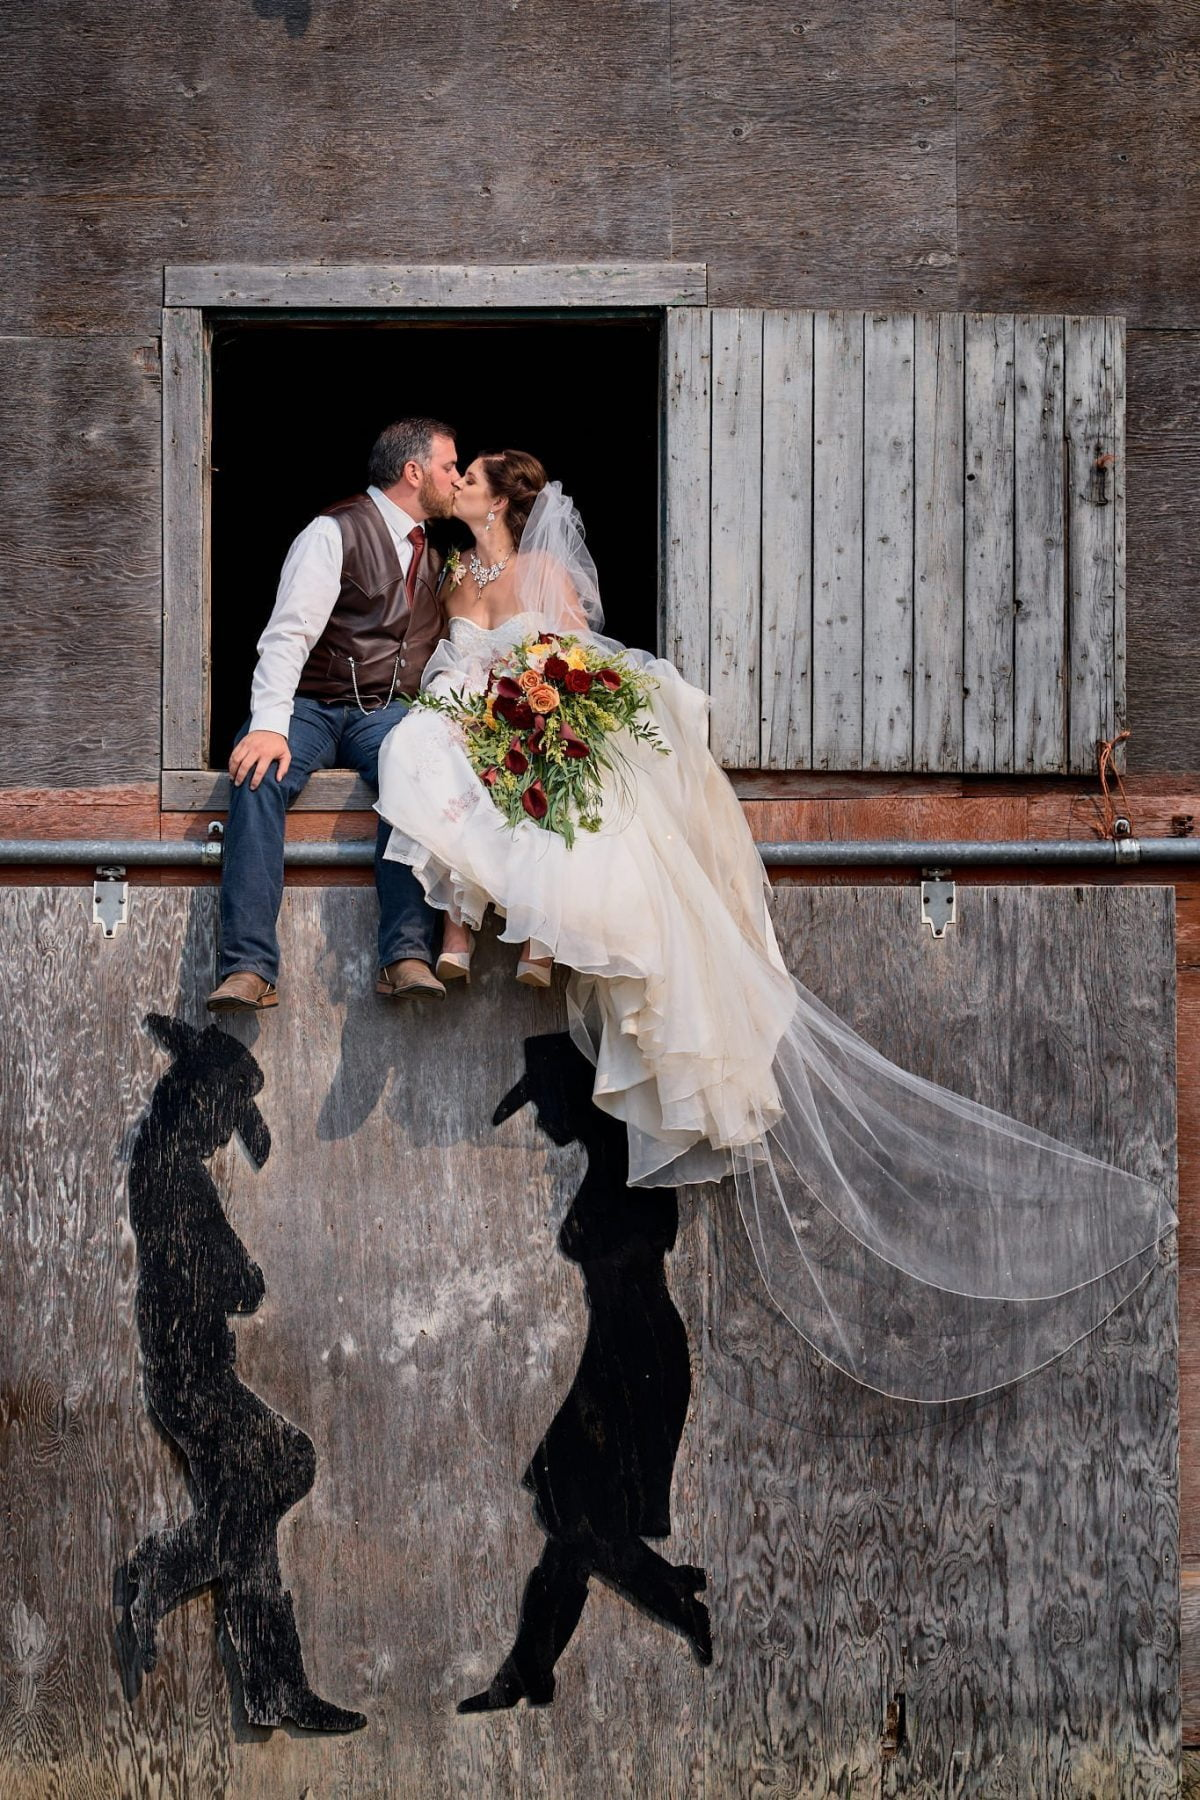 Wedding photography country rustic barn alberta